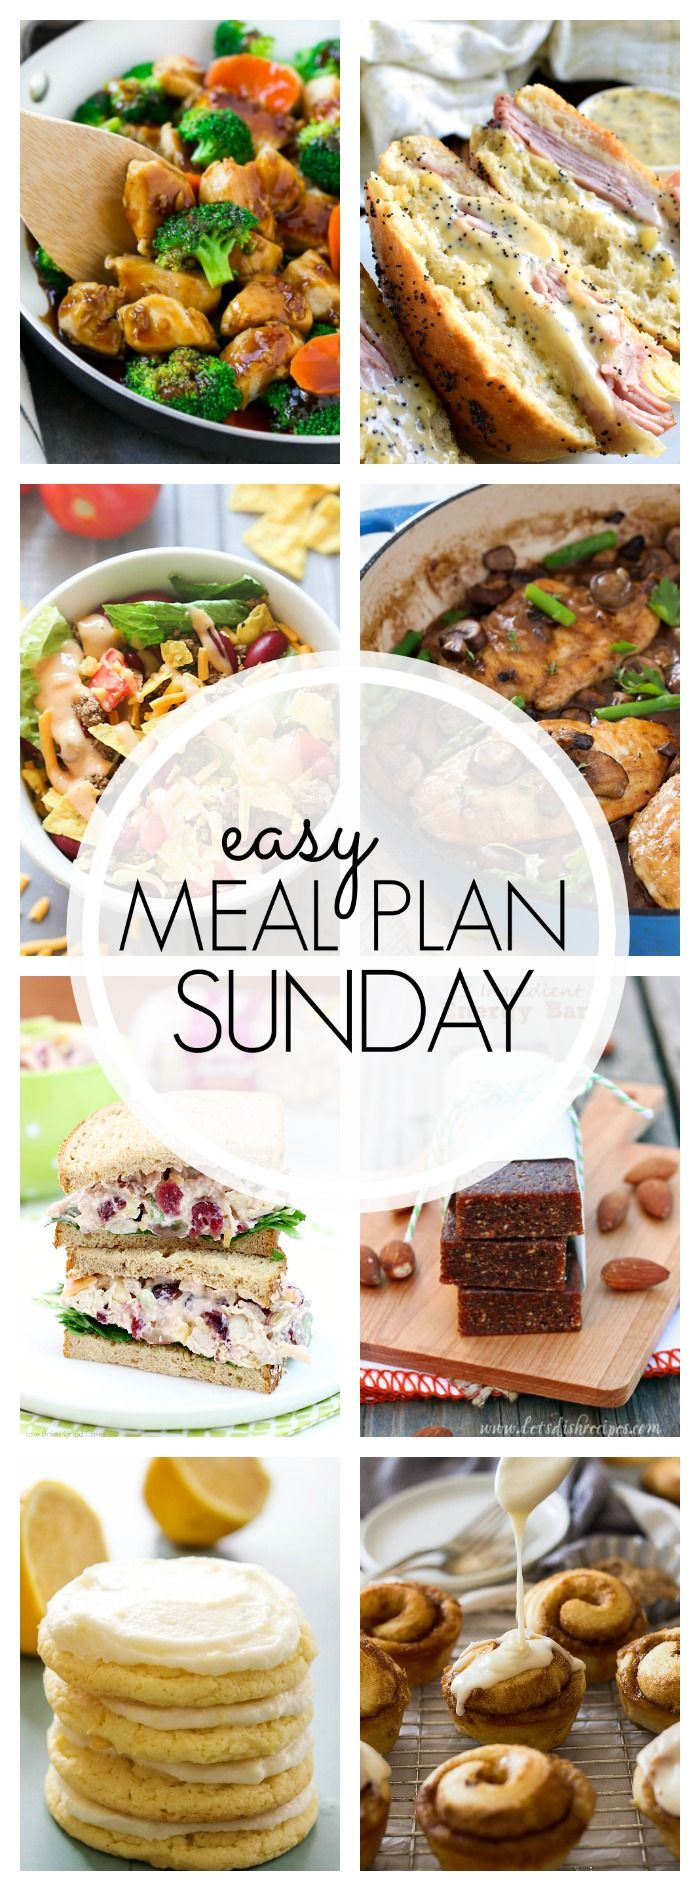 Welcome back to Easy Meal Plan Sunday #91 where you'll find recipes for your week. Grab them all!